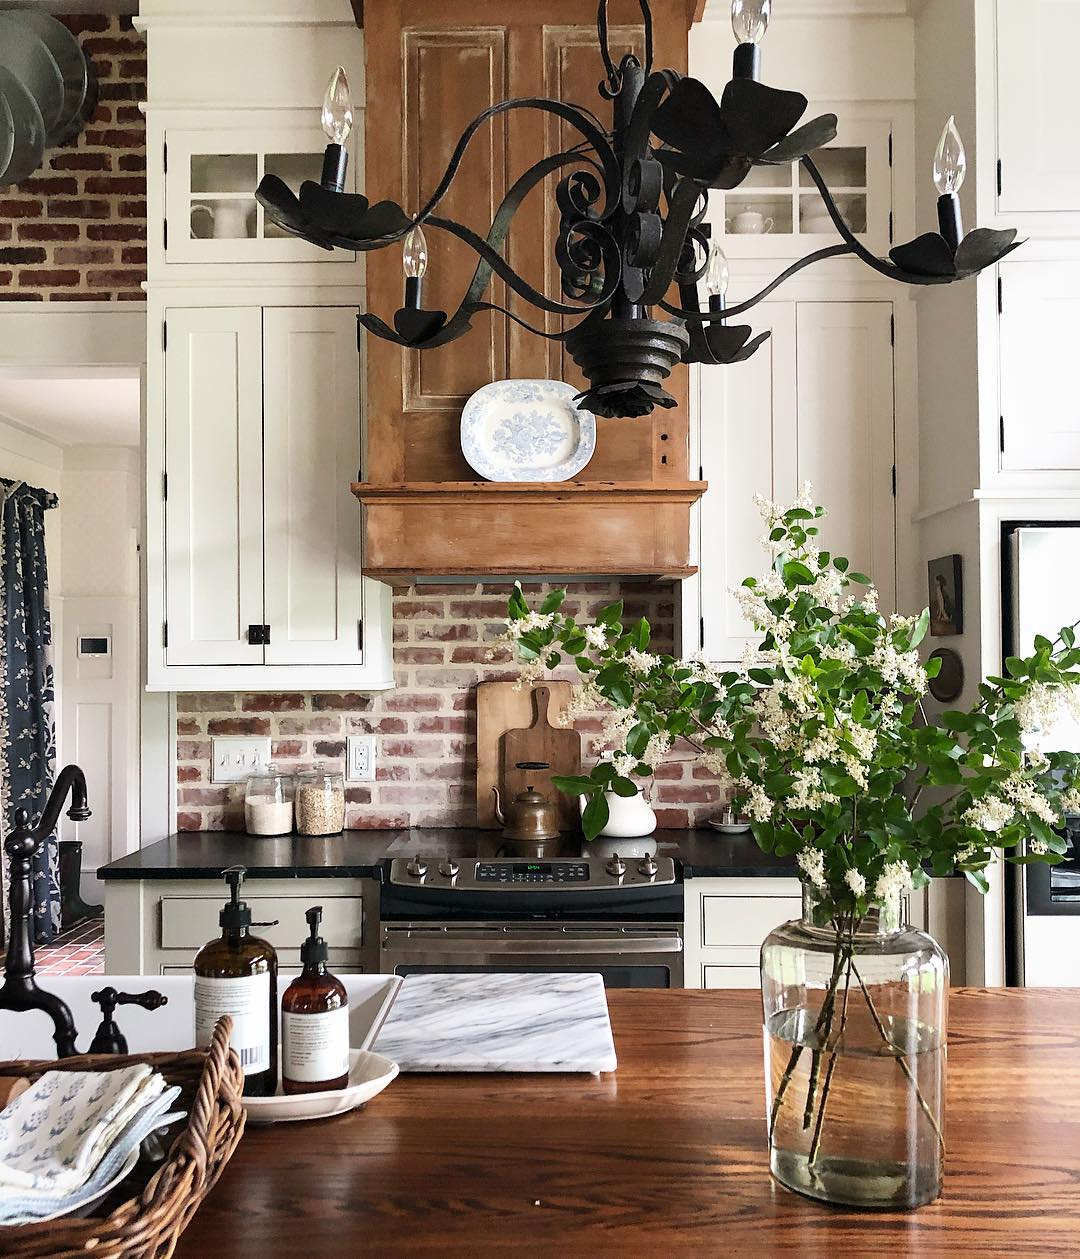 11 Kitchen Decorating Ideas for Your Walls   The Anastasia Co. on Kitchen Decoration Ideas  id=13236